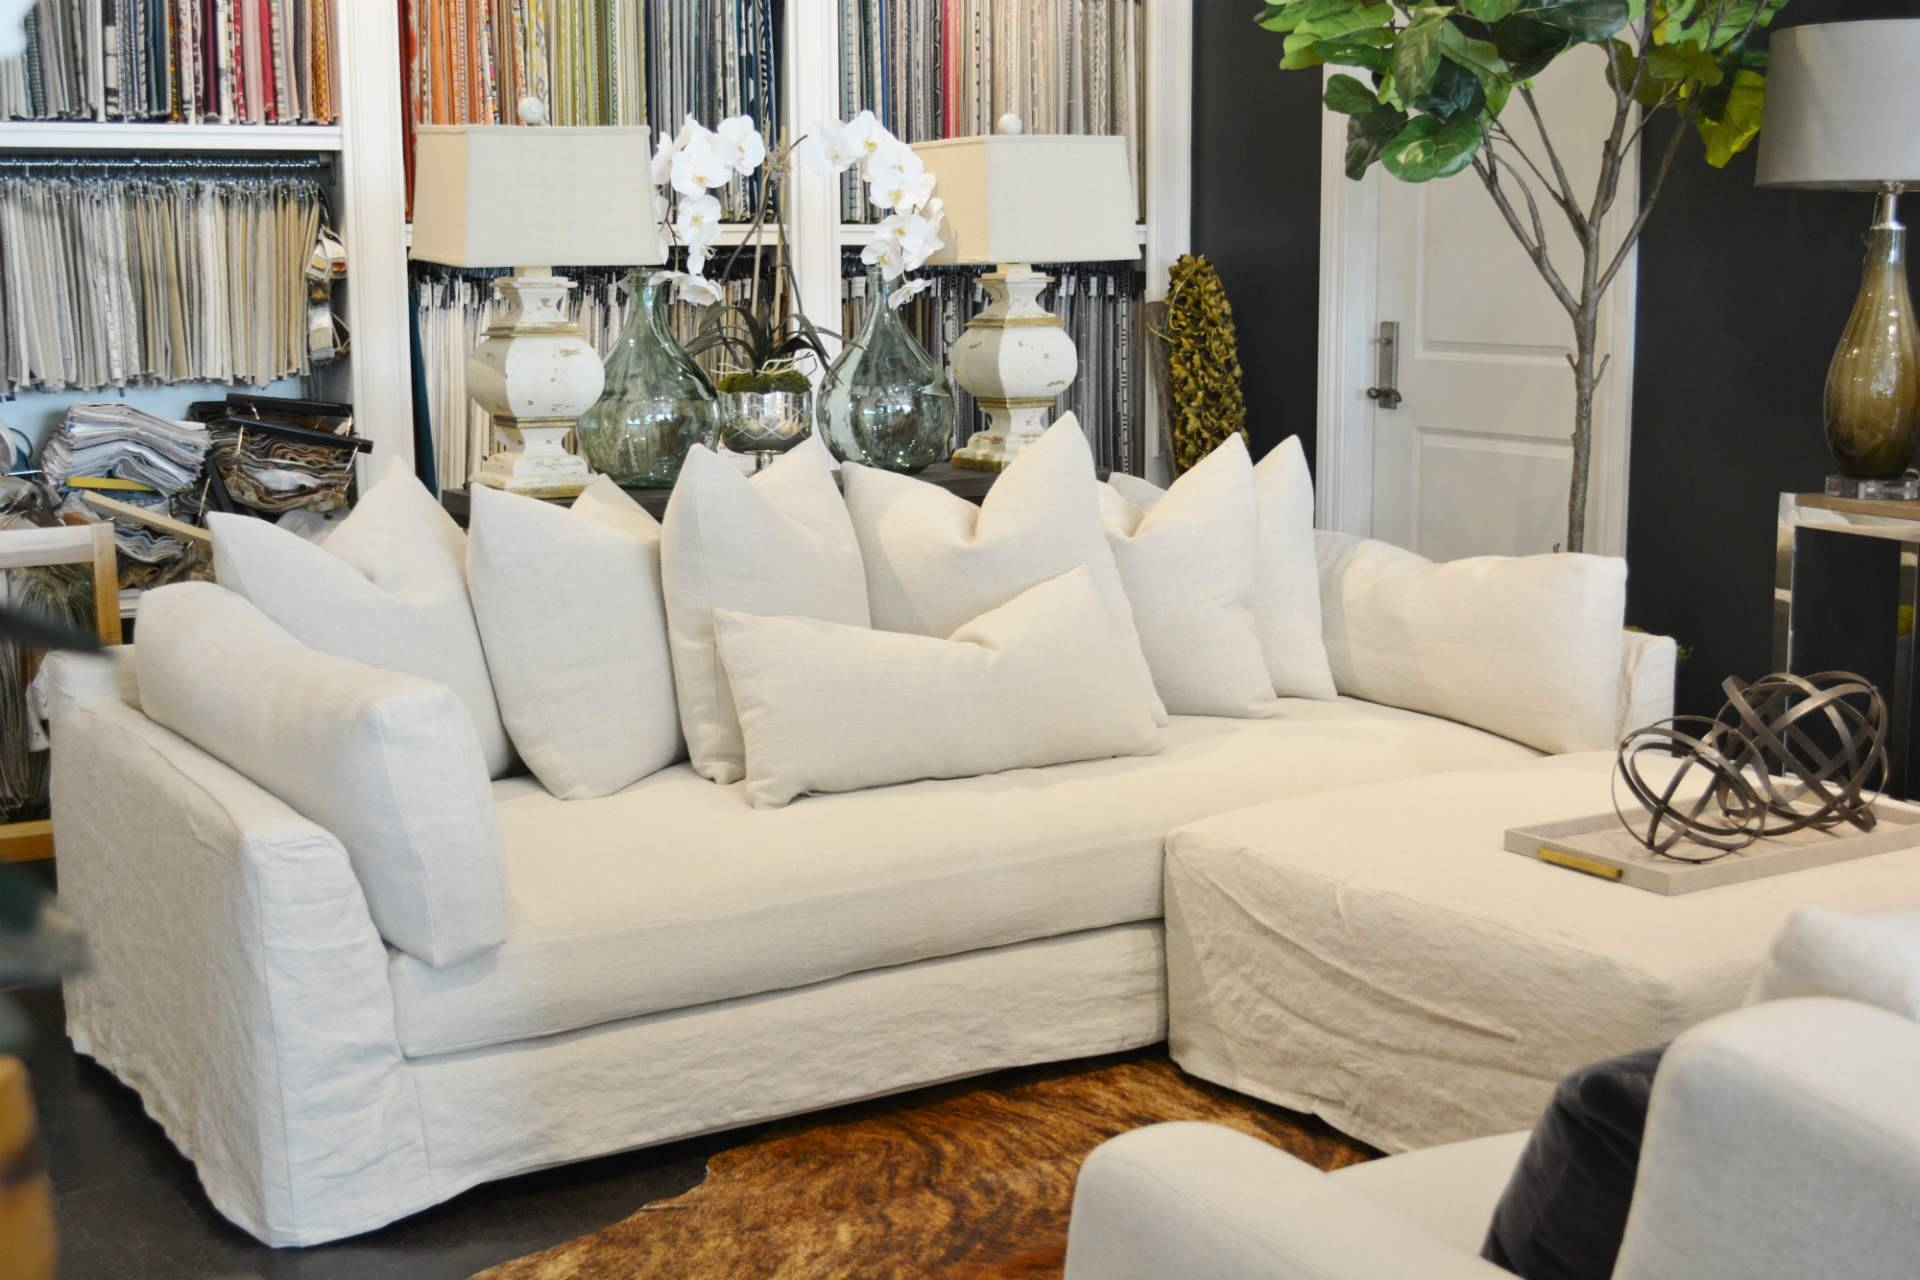 What's New Wednesday: Private Label Newport Collection - Heather in Newport Sofas (Image 30 of 30)